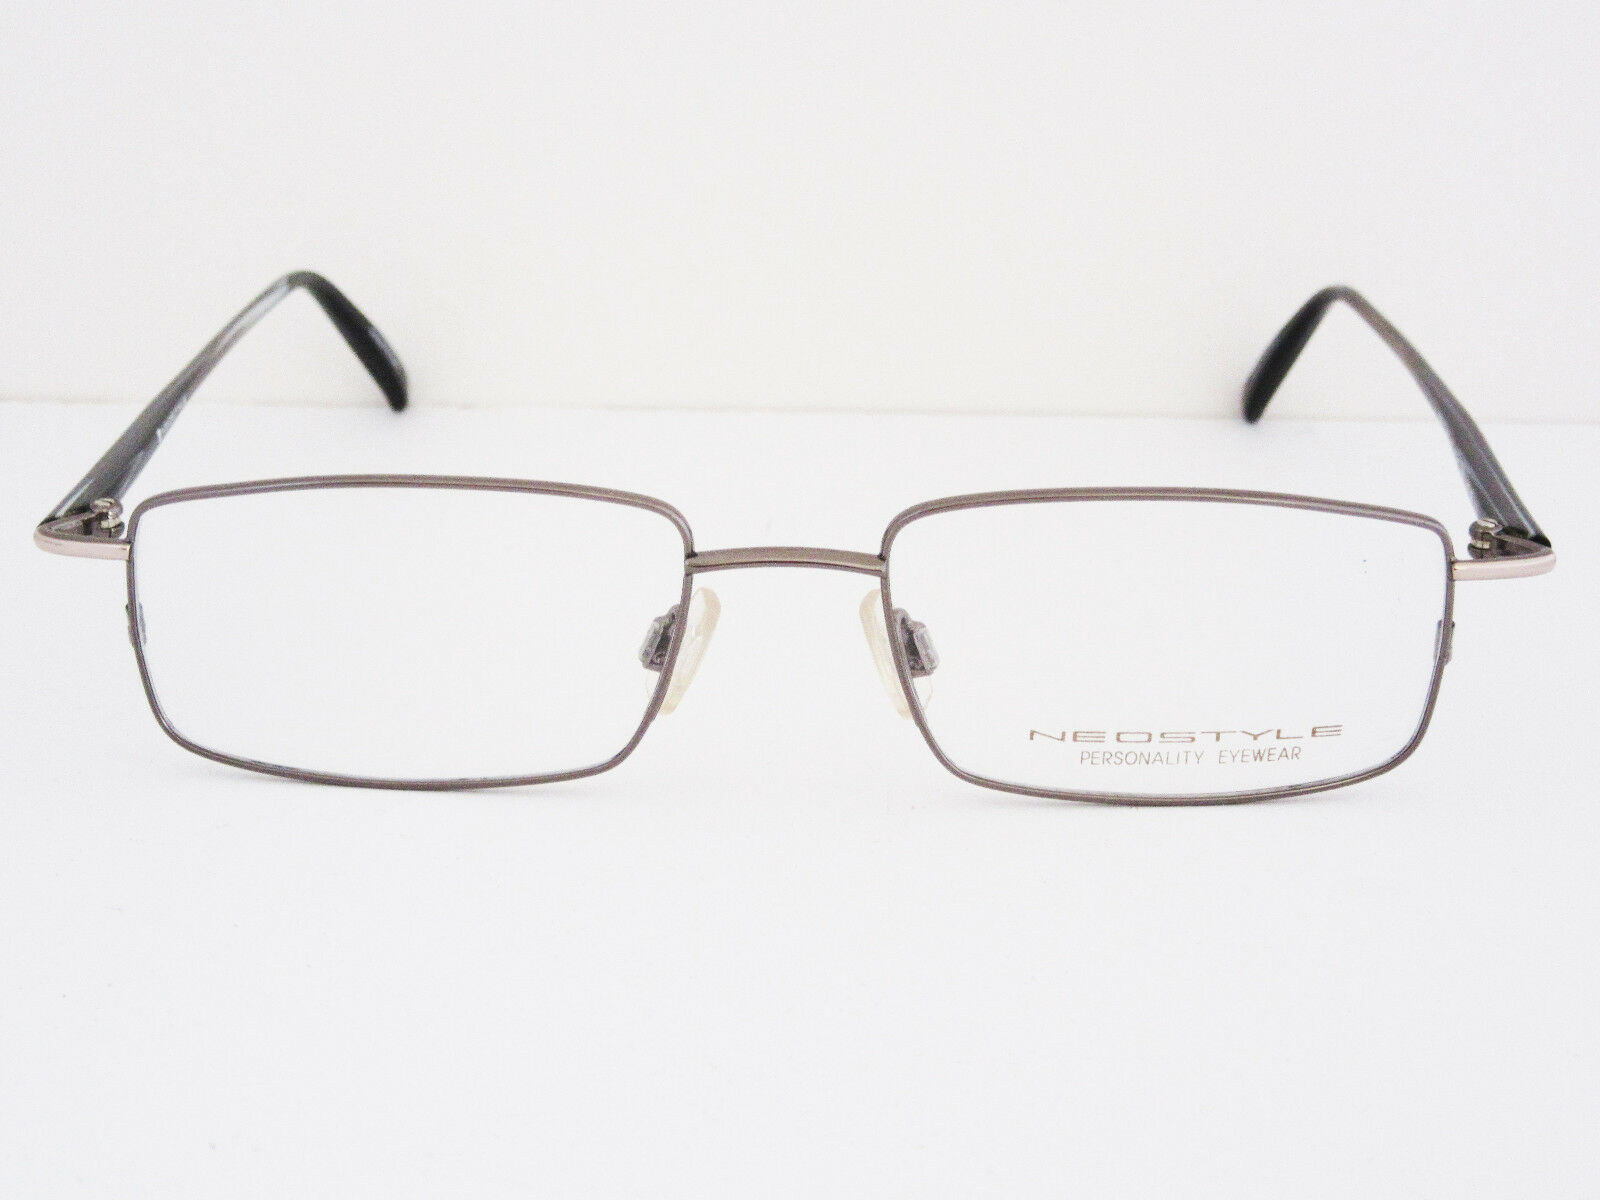 c2e776d3b9a NEOSTYLE Office 690 357 Unisex Eyeglass Frames Germany NOS for sale ...